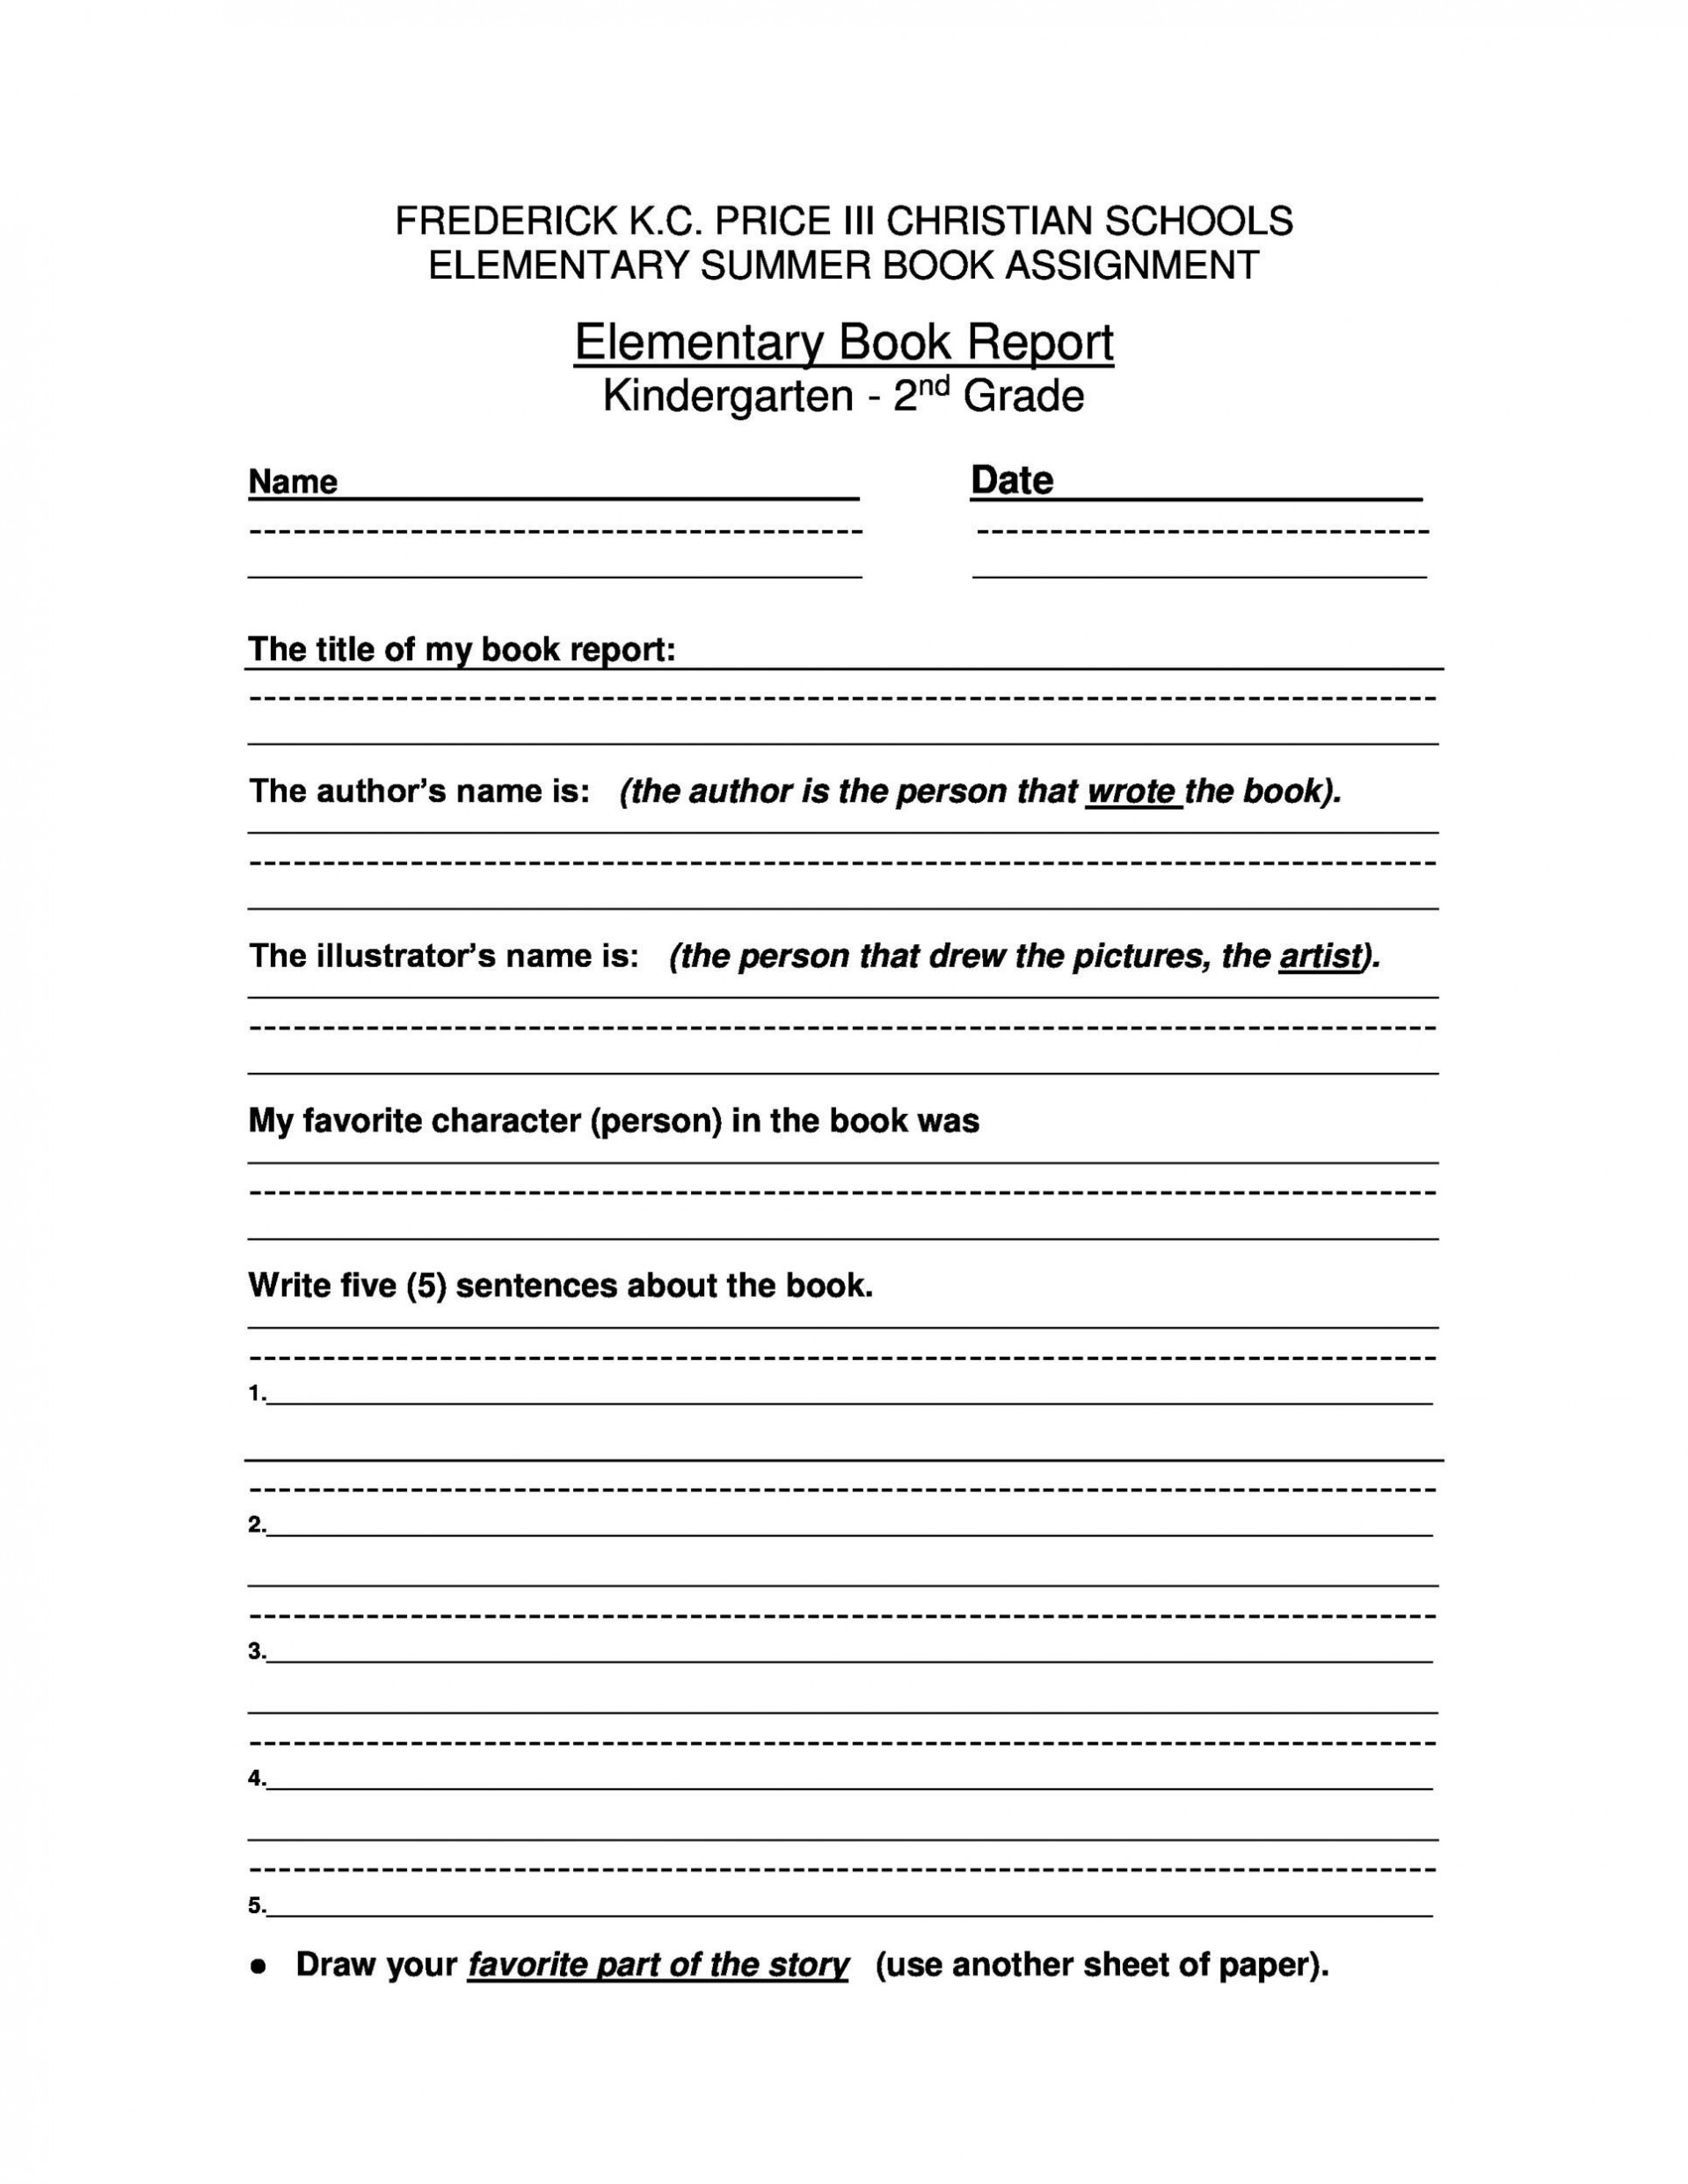 003 Surprising Blank Book Report Form 6th Grade Design  Free Printable Template1920